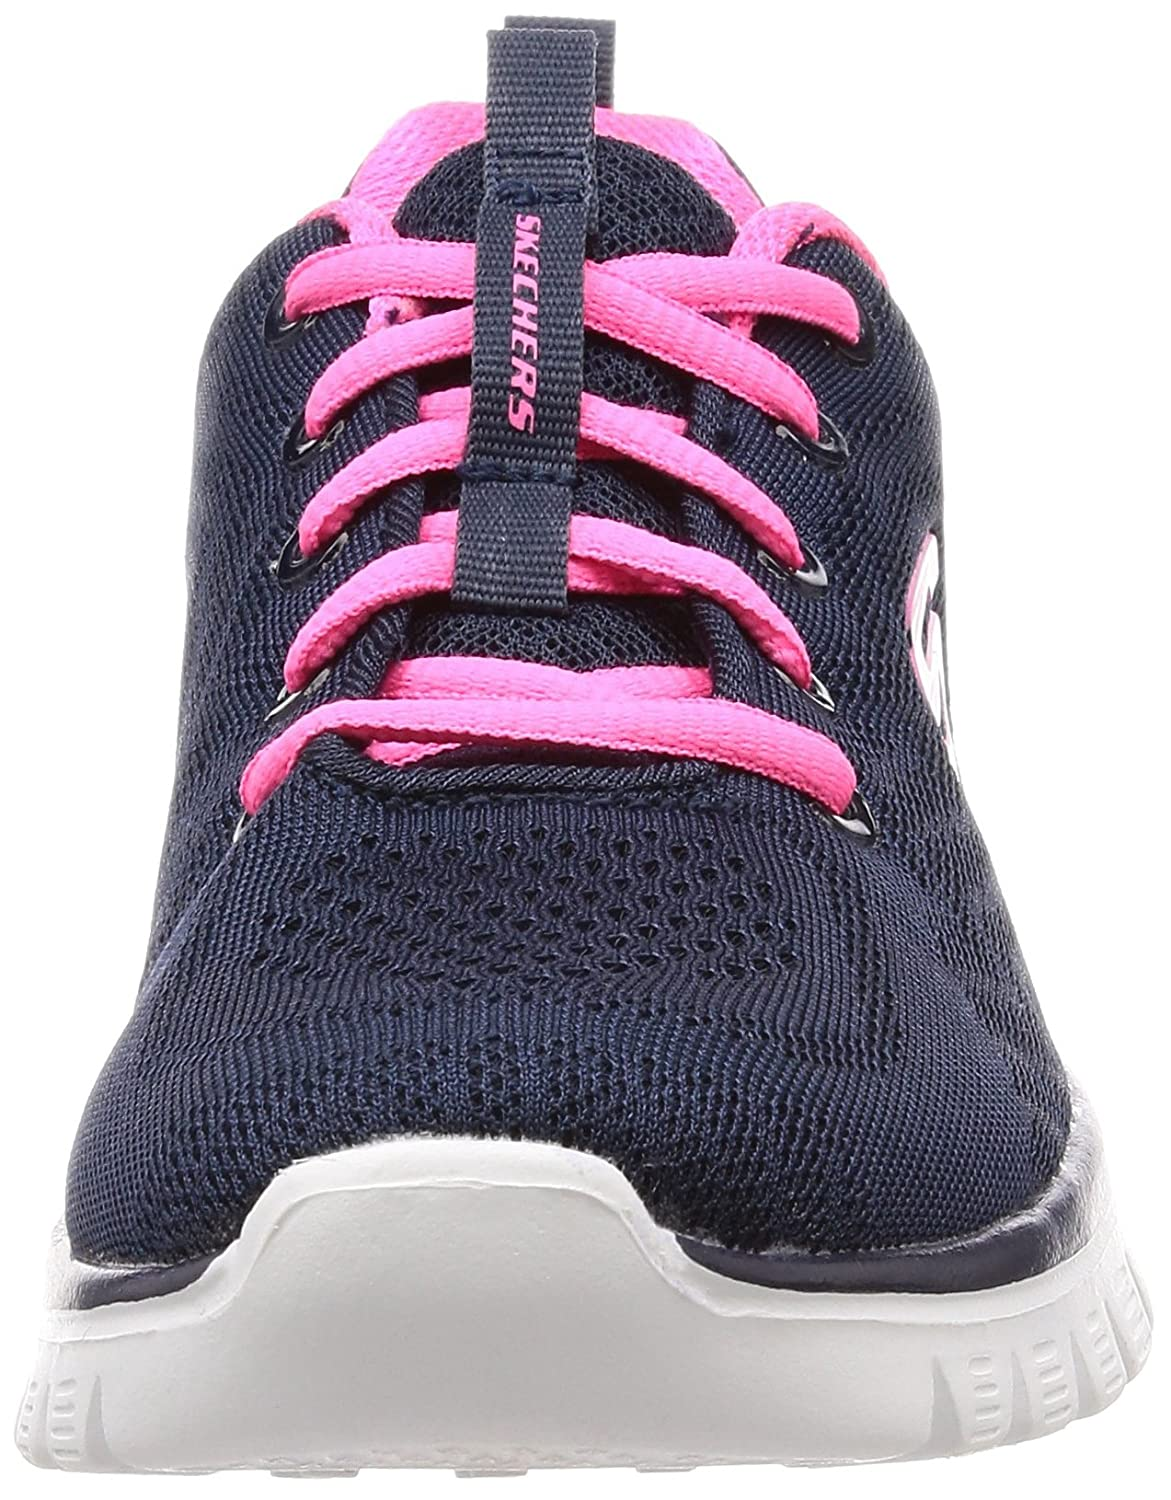 Skechers Women's Graceful-Get Connected Sneaker B074L58GBW Hot 7.5 B(M) US|Navy Blue Hot B074L58GBW Pink Trim 24497d